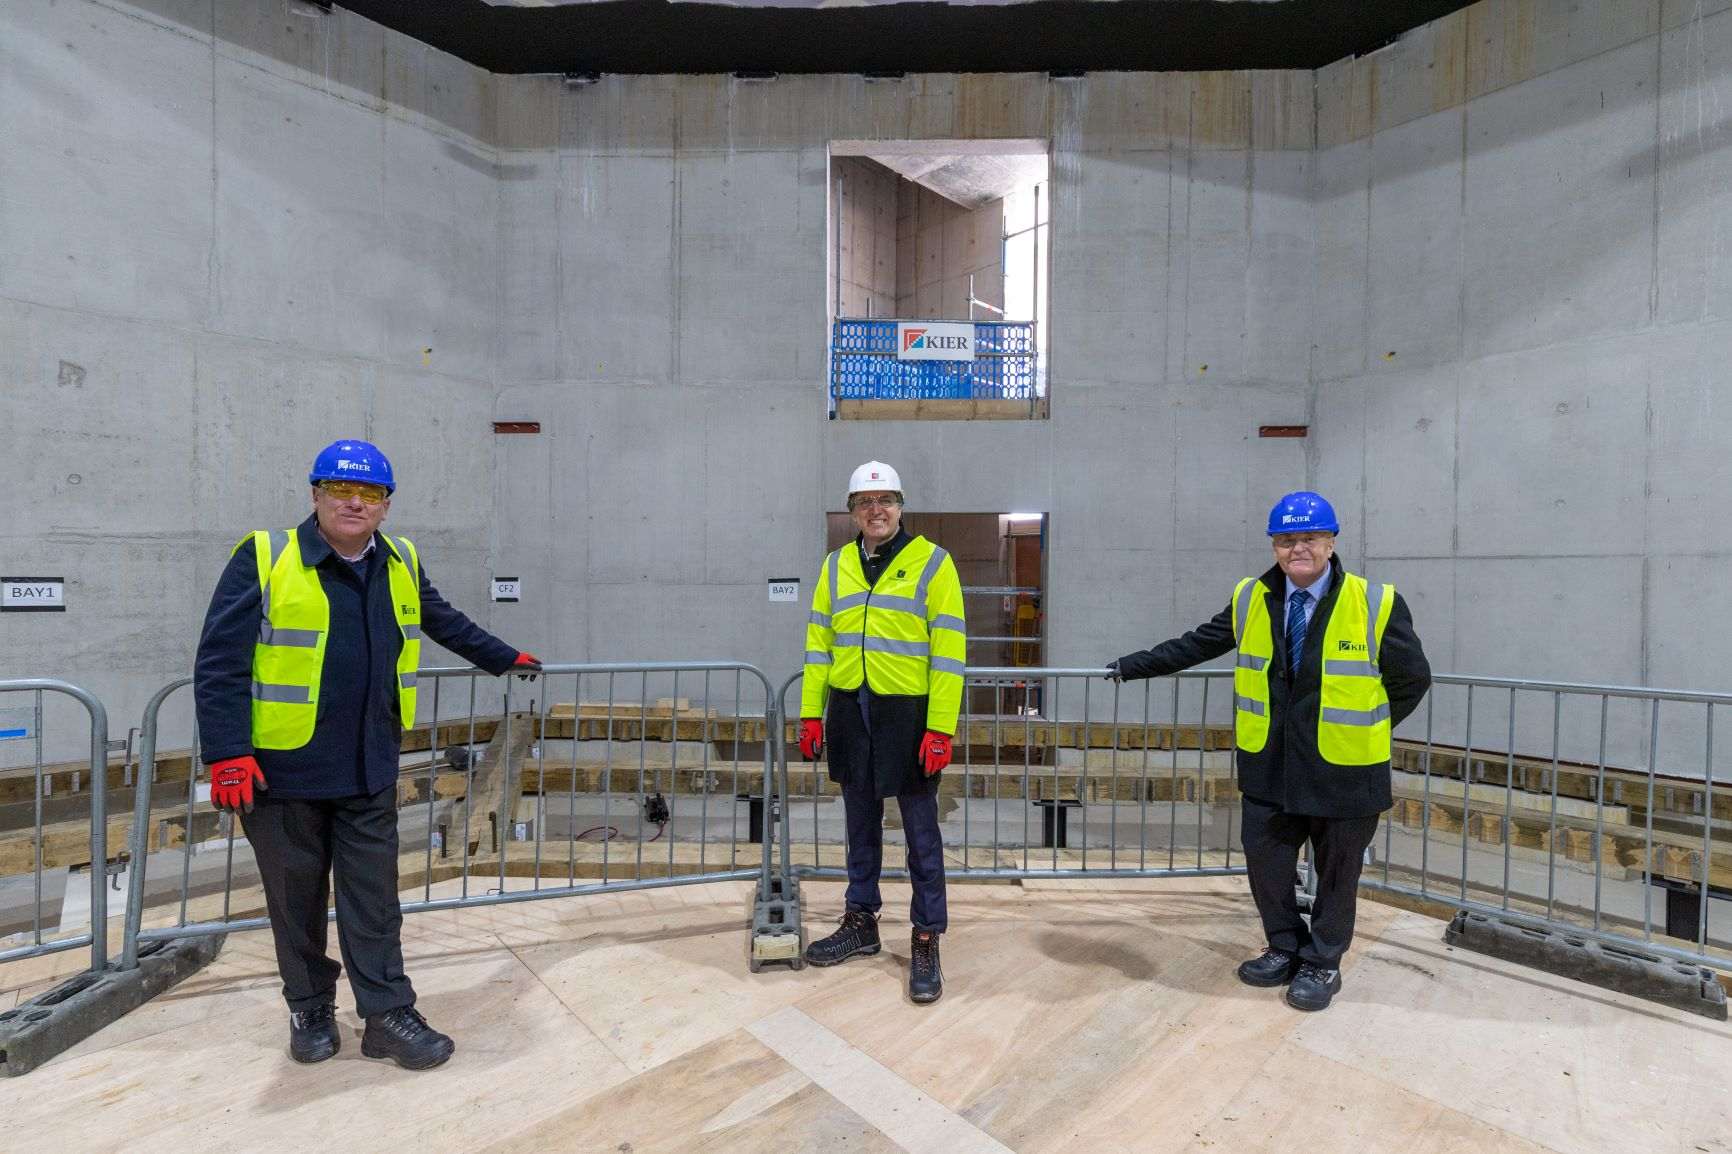 Cllr Graham Morgan, Leader of Knowsley Council; Metro-Mayor Steve Rotheram and Cllr Tony Brennan at the Shakespeare North Playhouse site.